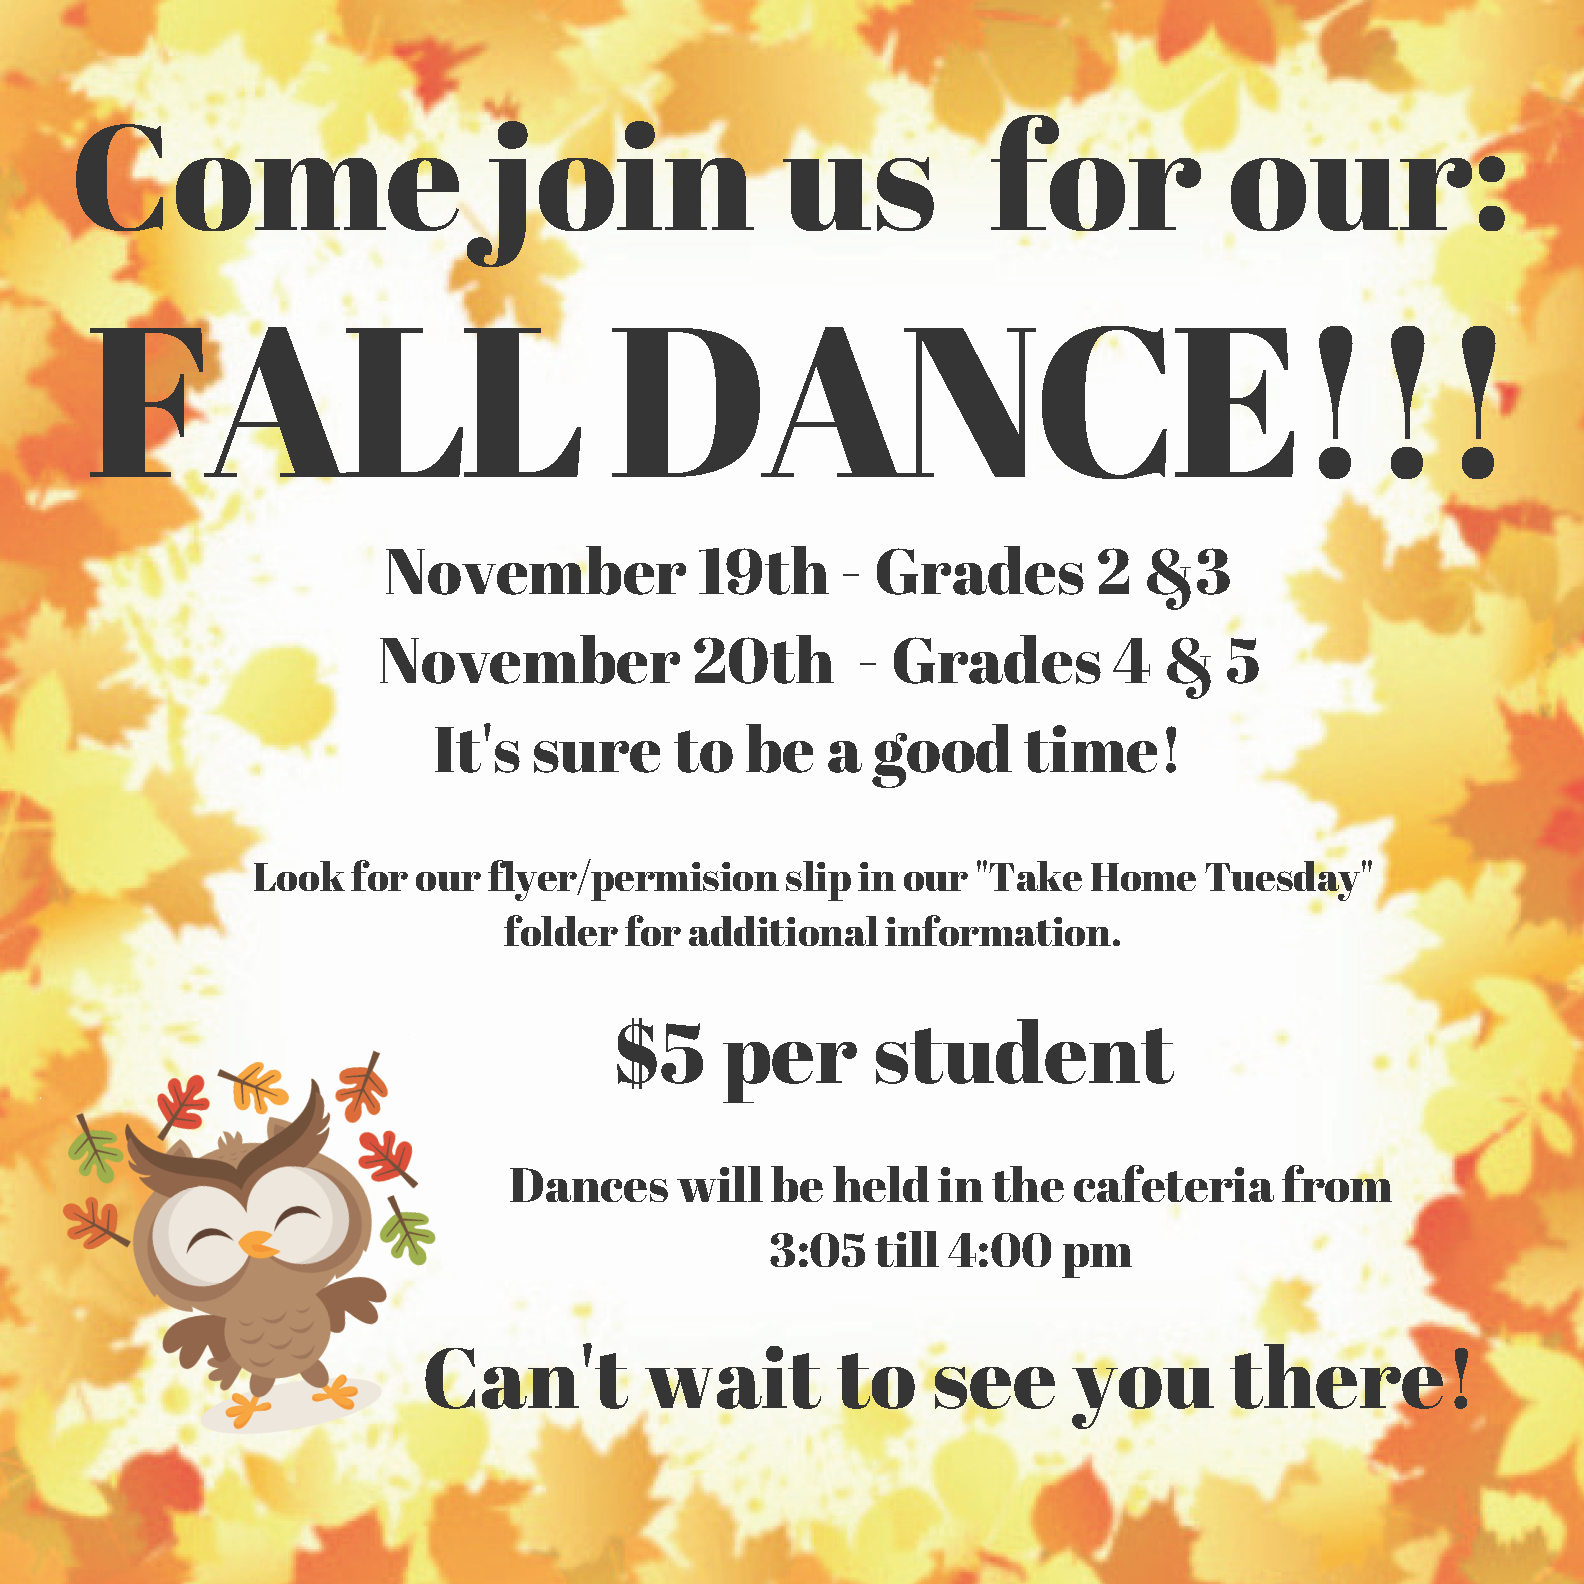 Fall Dance (Grades 2 & 3) @ Cafeteria